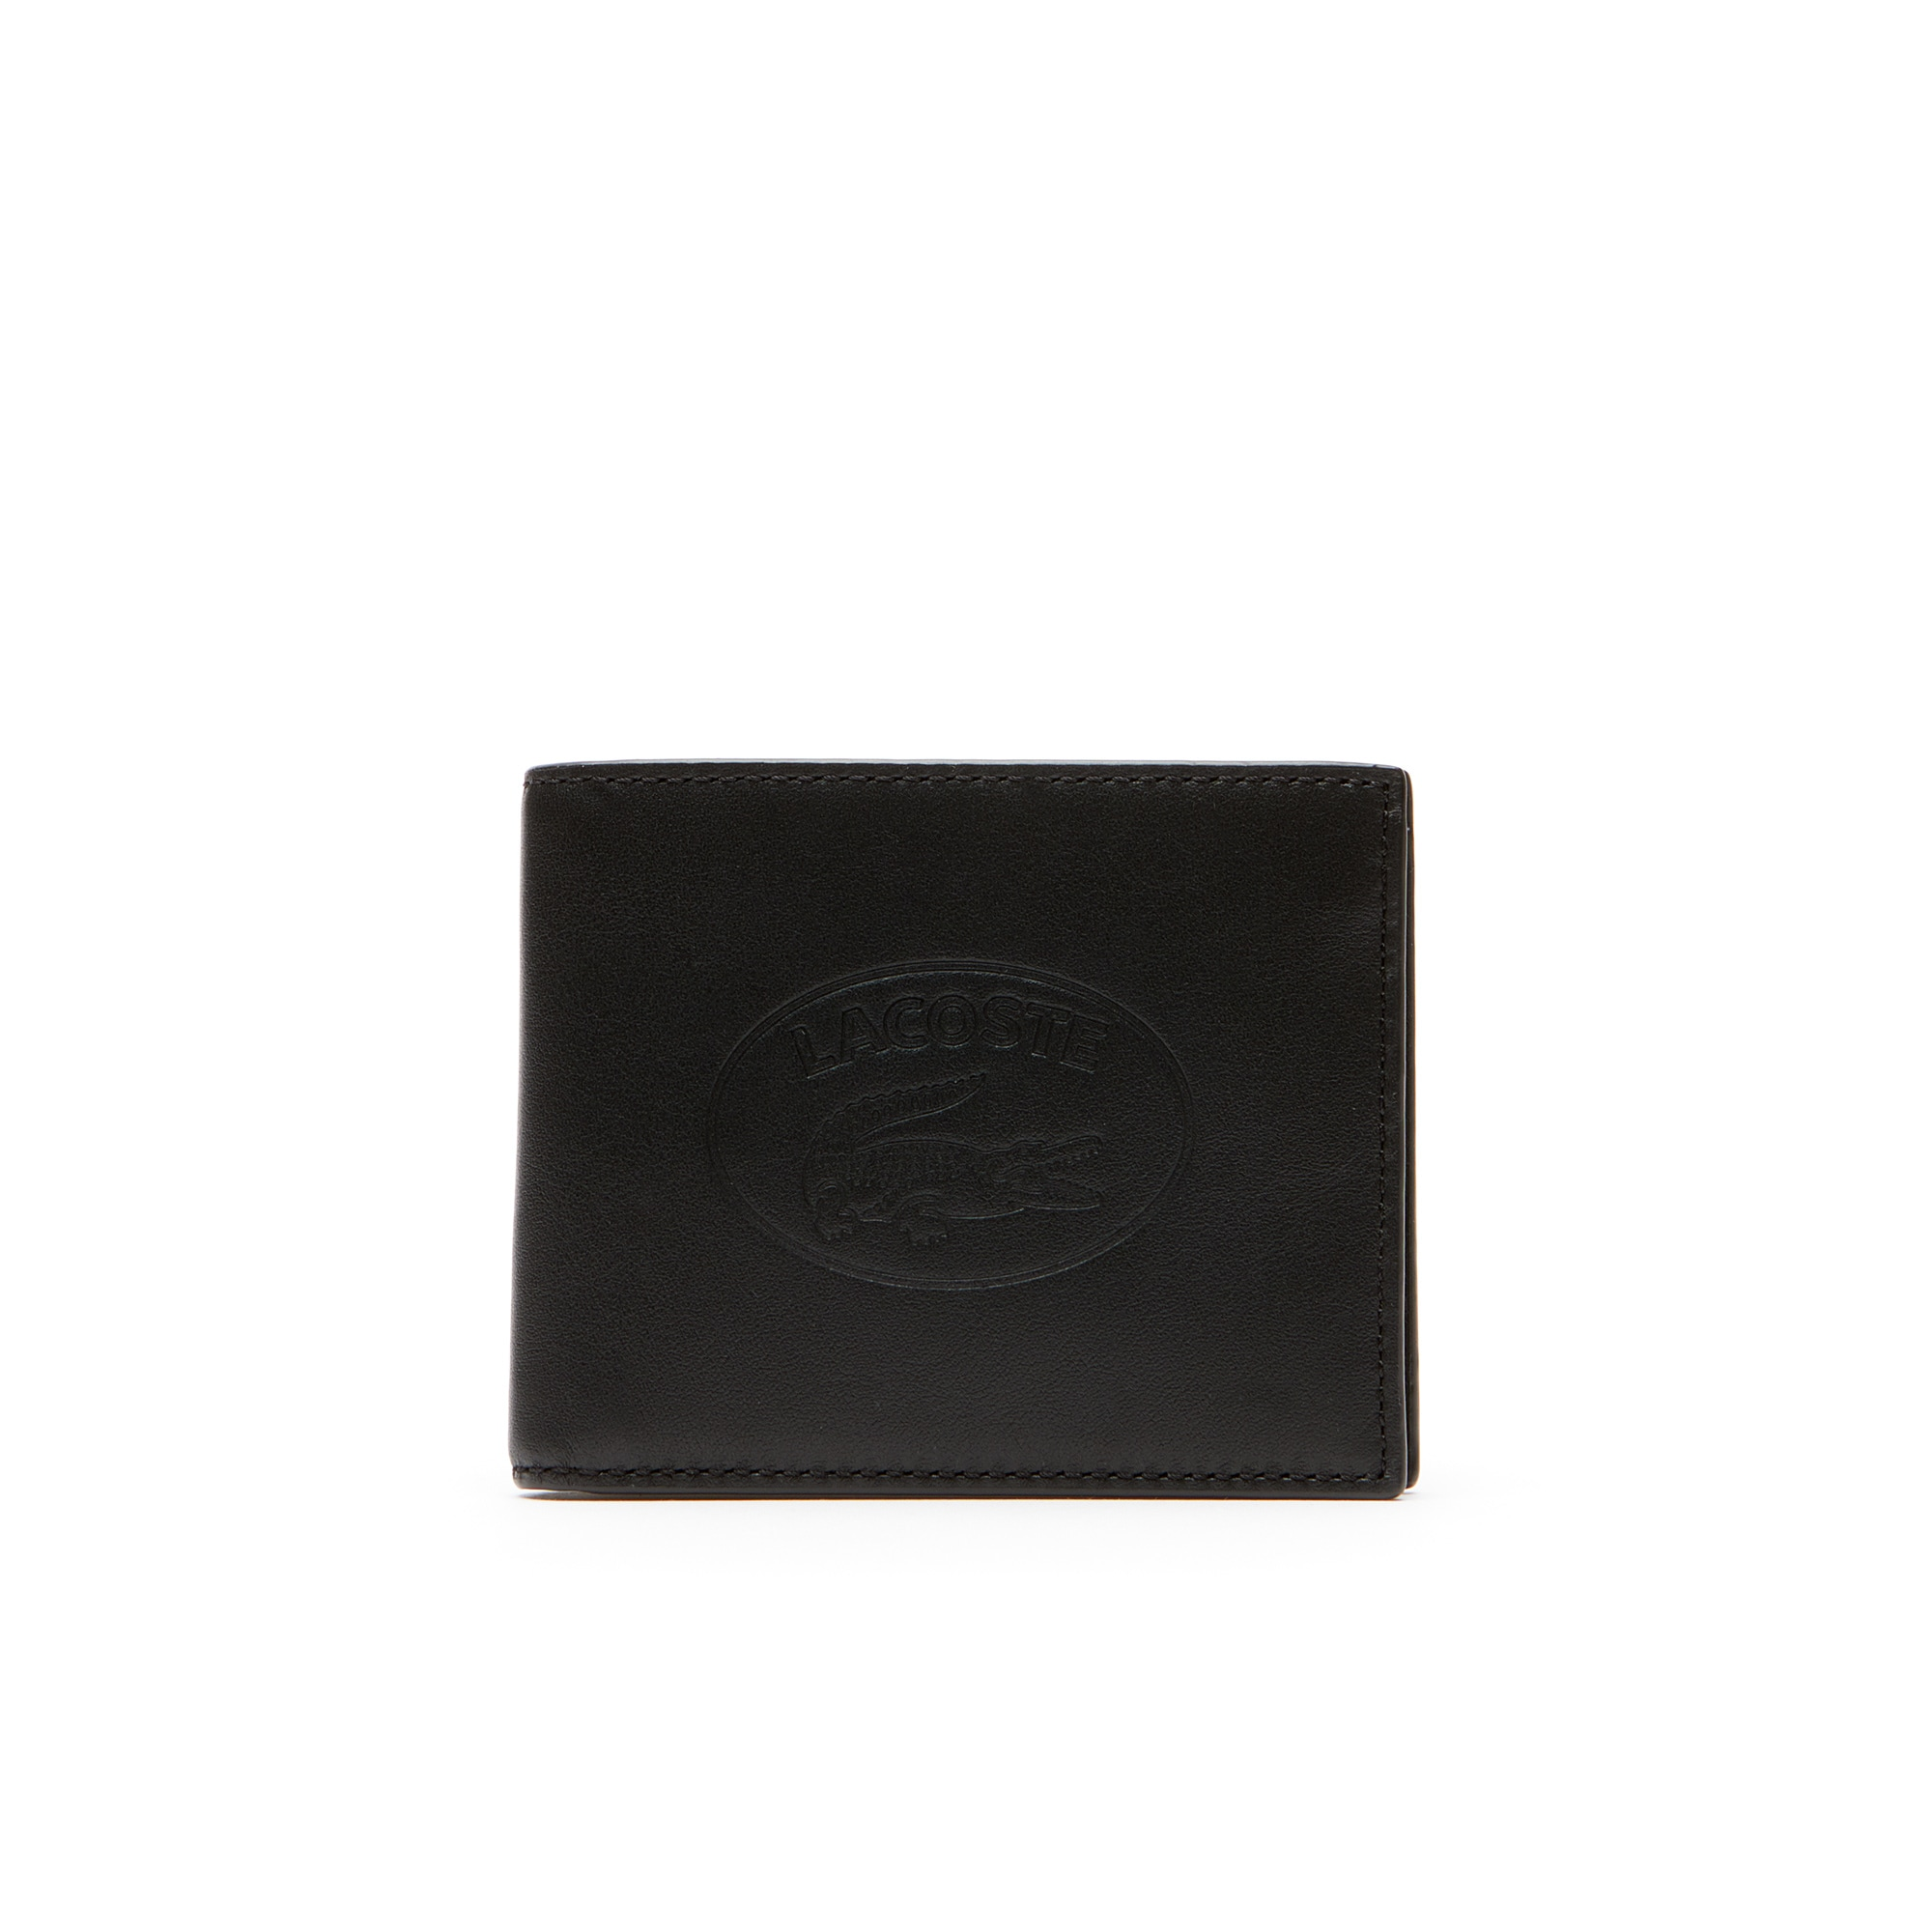 Men's L.12.12 Casual Embossed Lettering Leather 6 Card Wallet